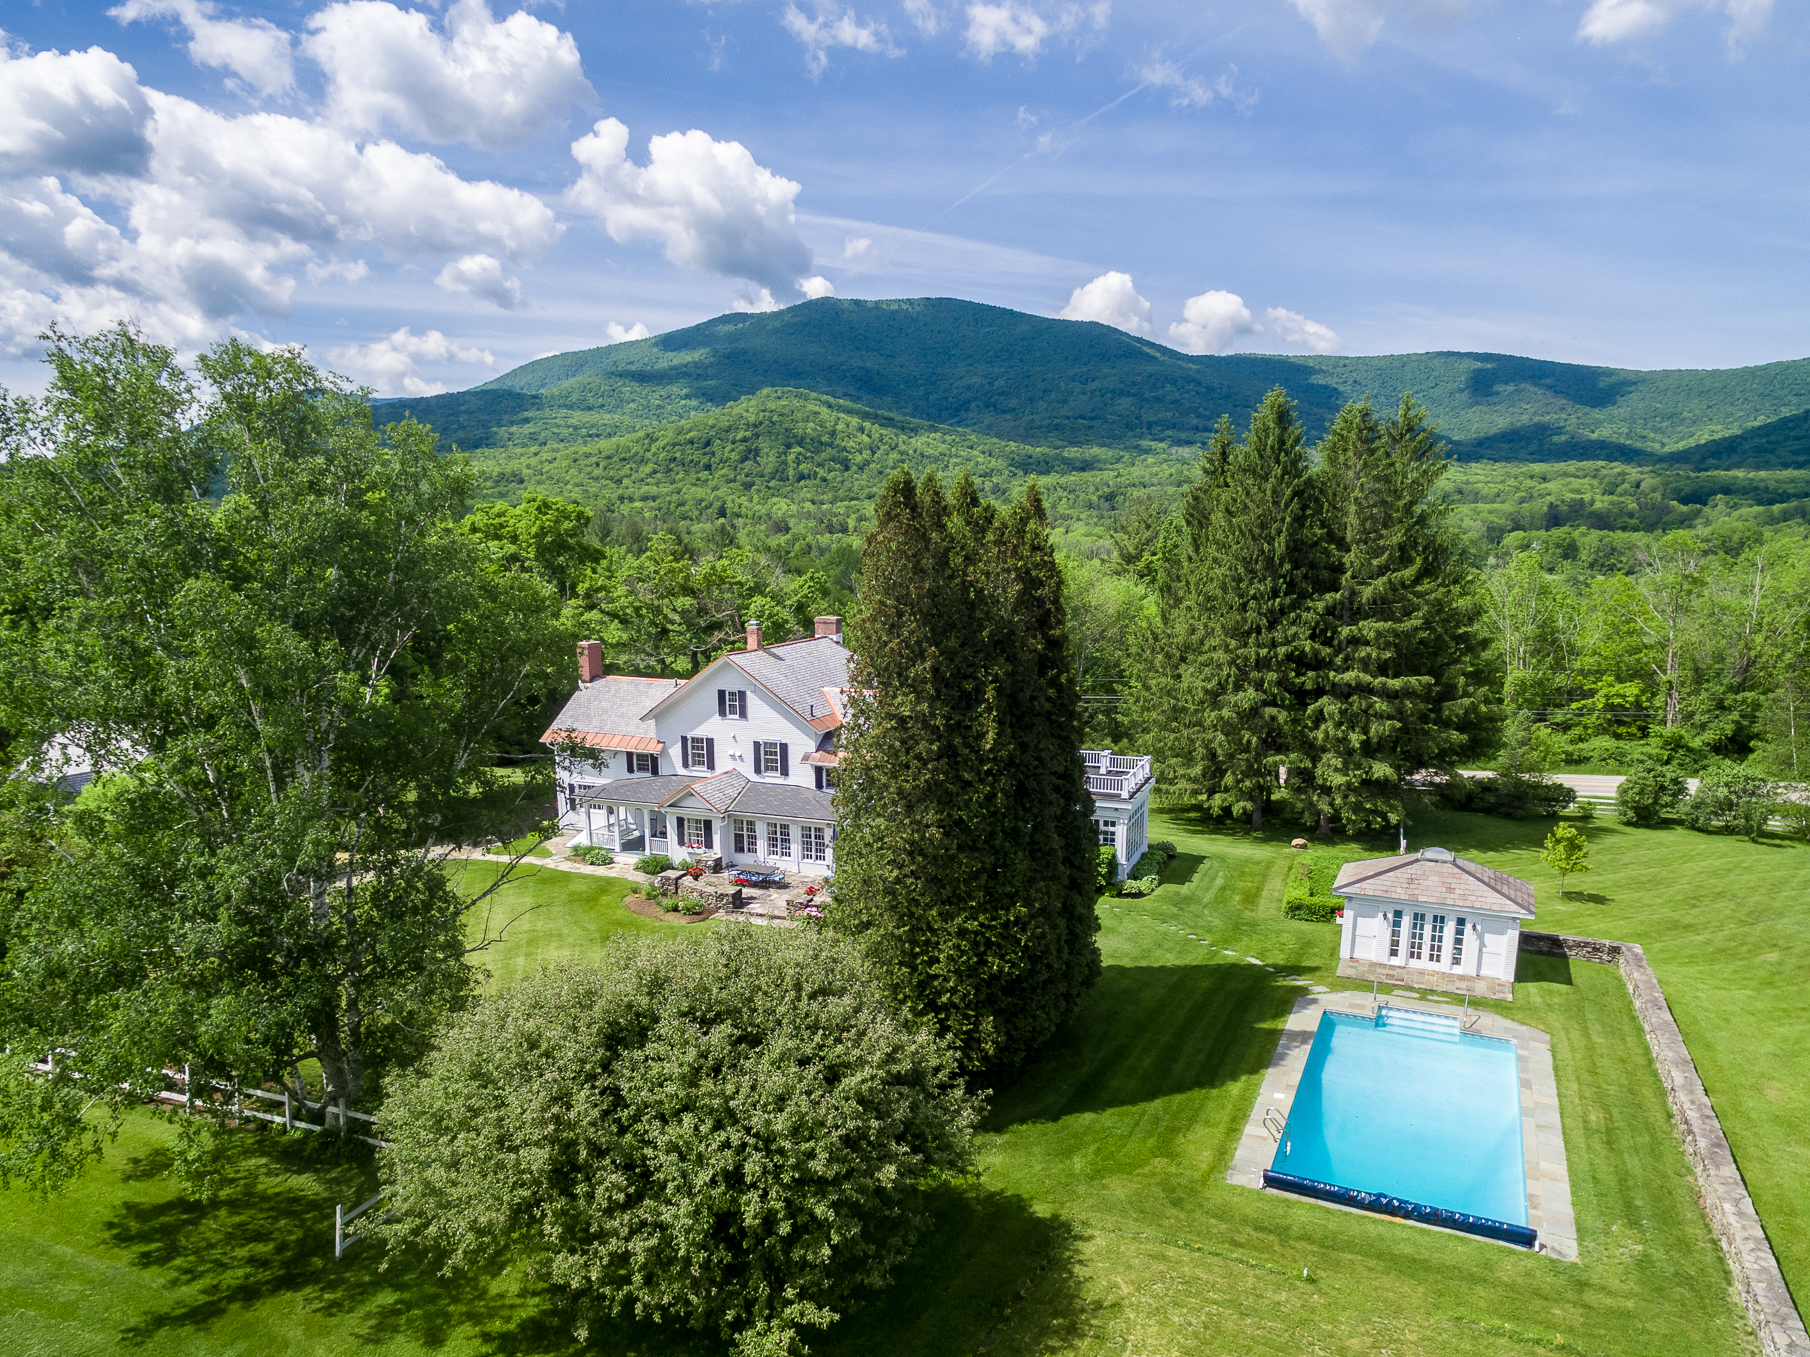 """Single Family Home for Sale at Historic Renovation - """"Dorset House"""" 2116 Vermont Route 30 Dorset, Vermont, 05255 United States"""